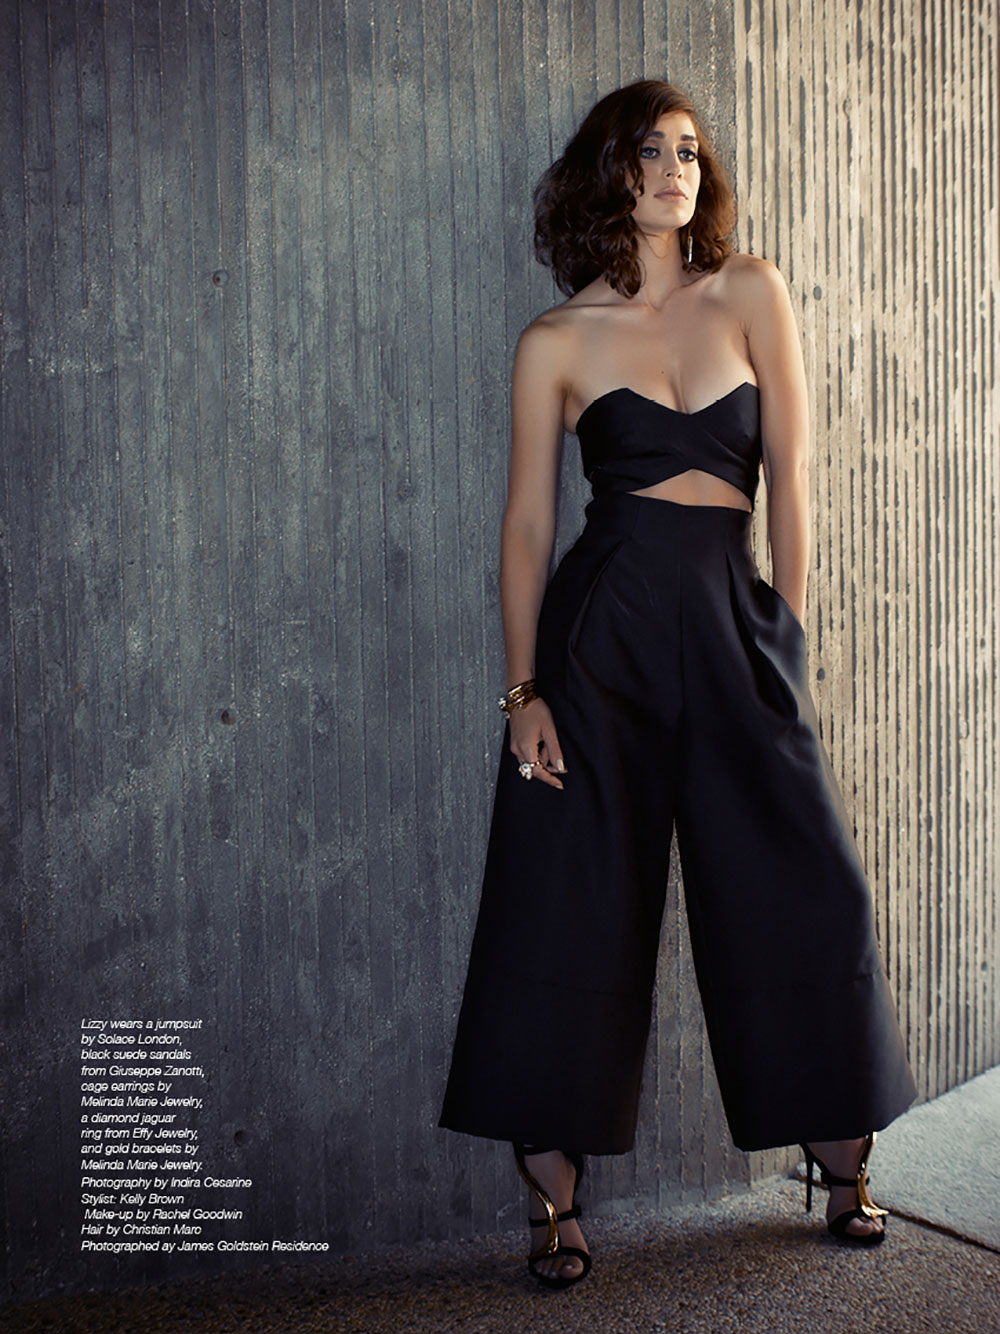 The Untitled Magazine GirlPower Issue - Lizzy Caplan - Photography by Indira Cesarine 6